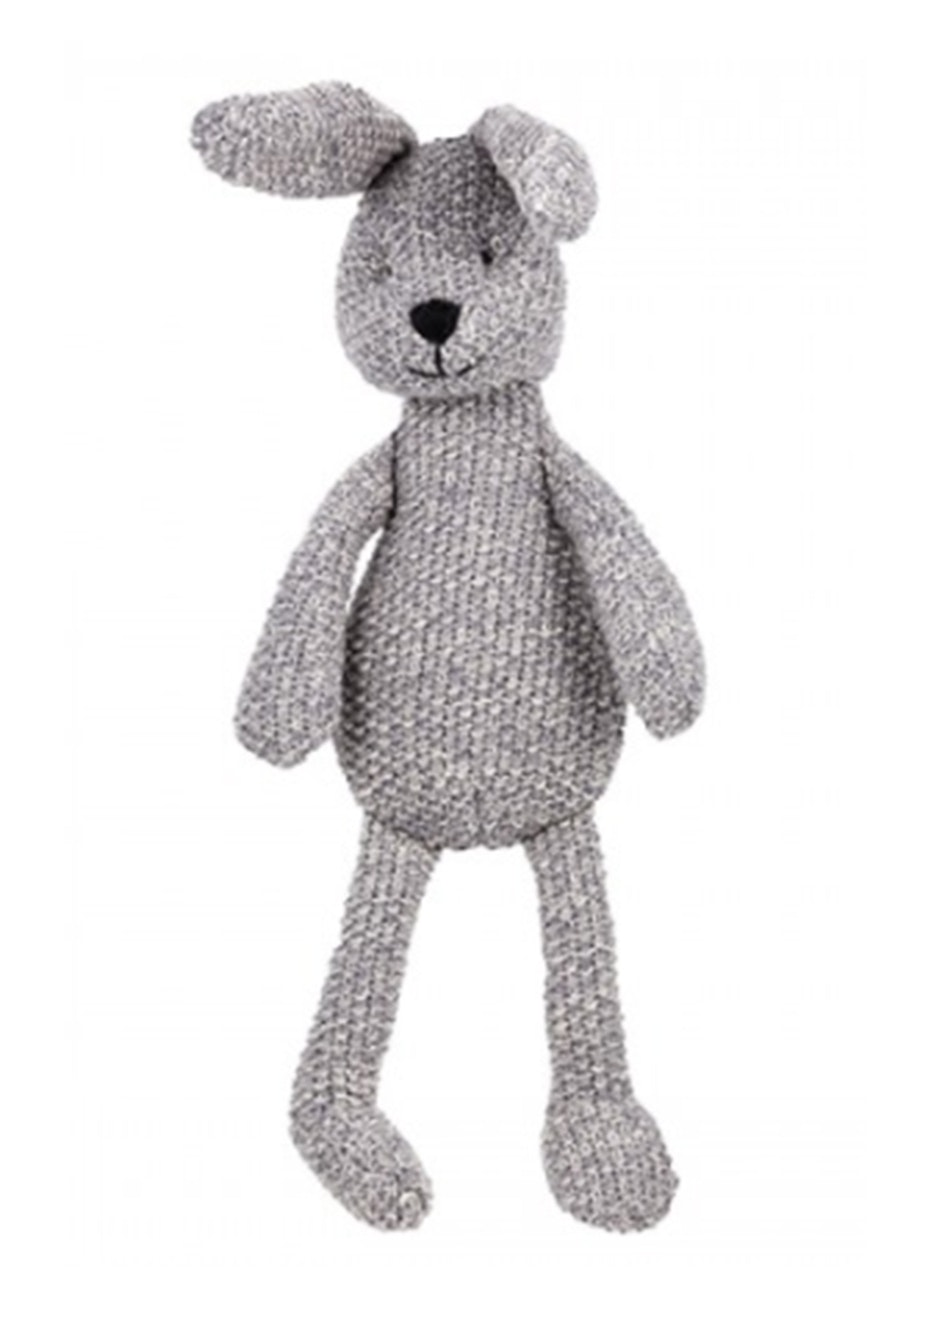 Lily & George - Fluffle Bunny Toy Grey